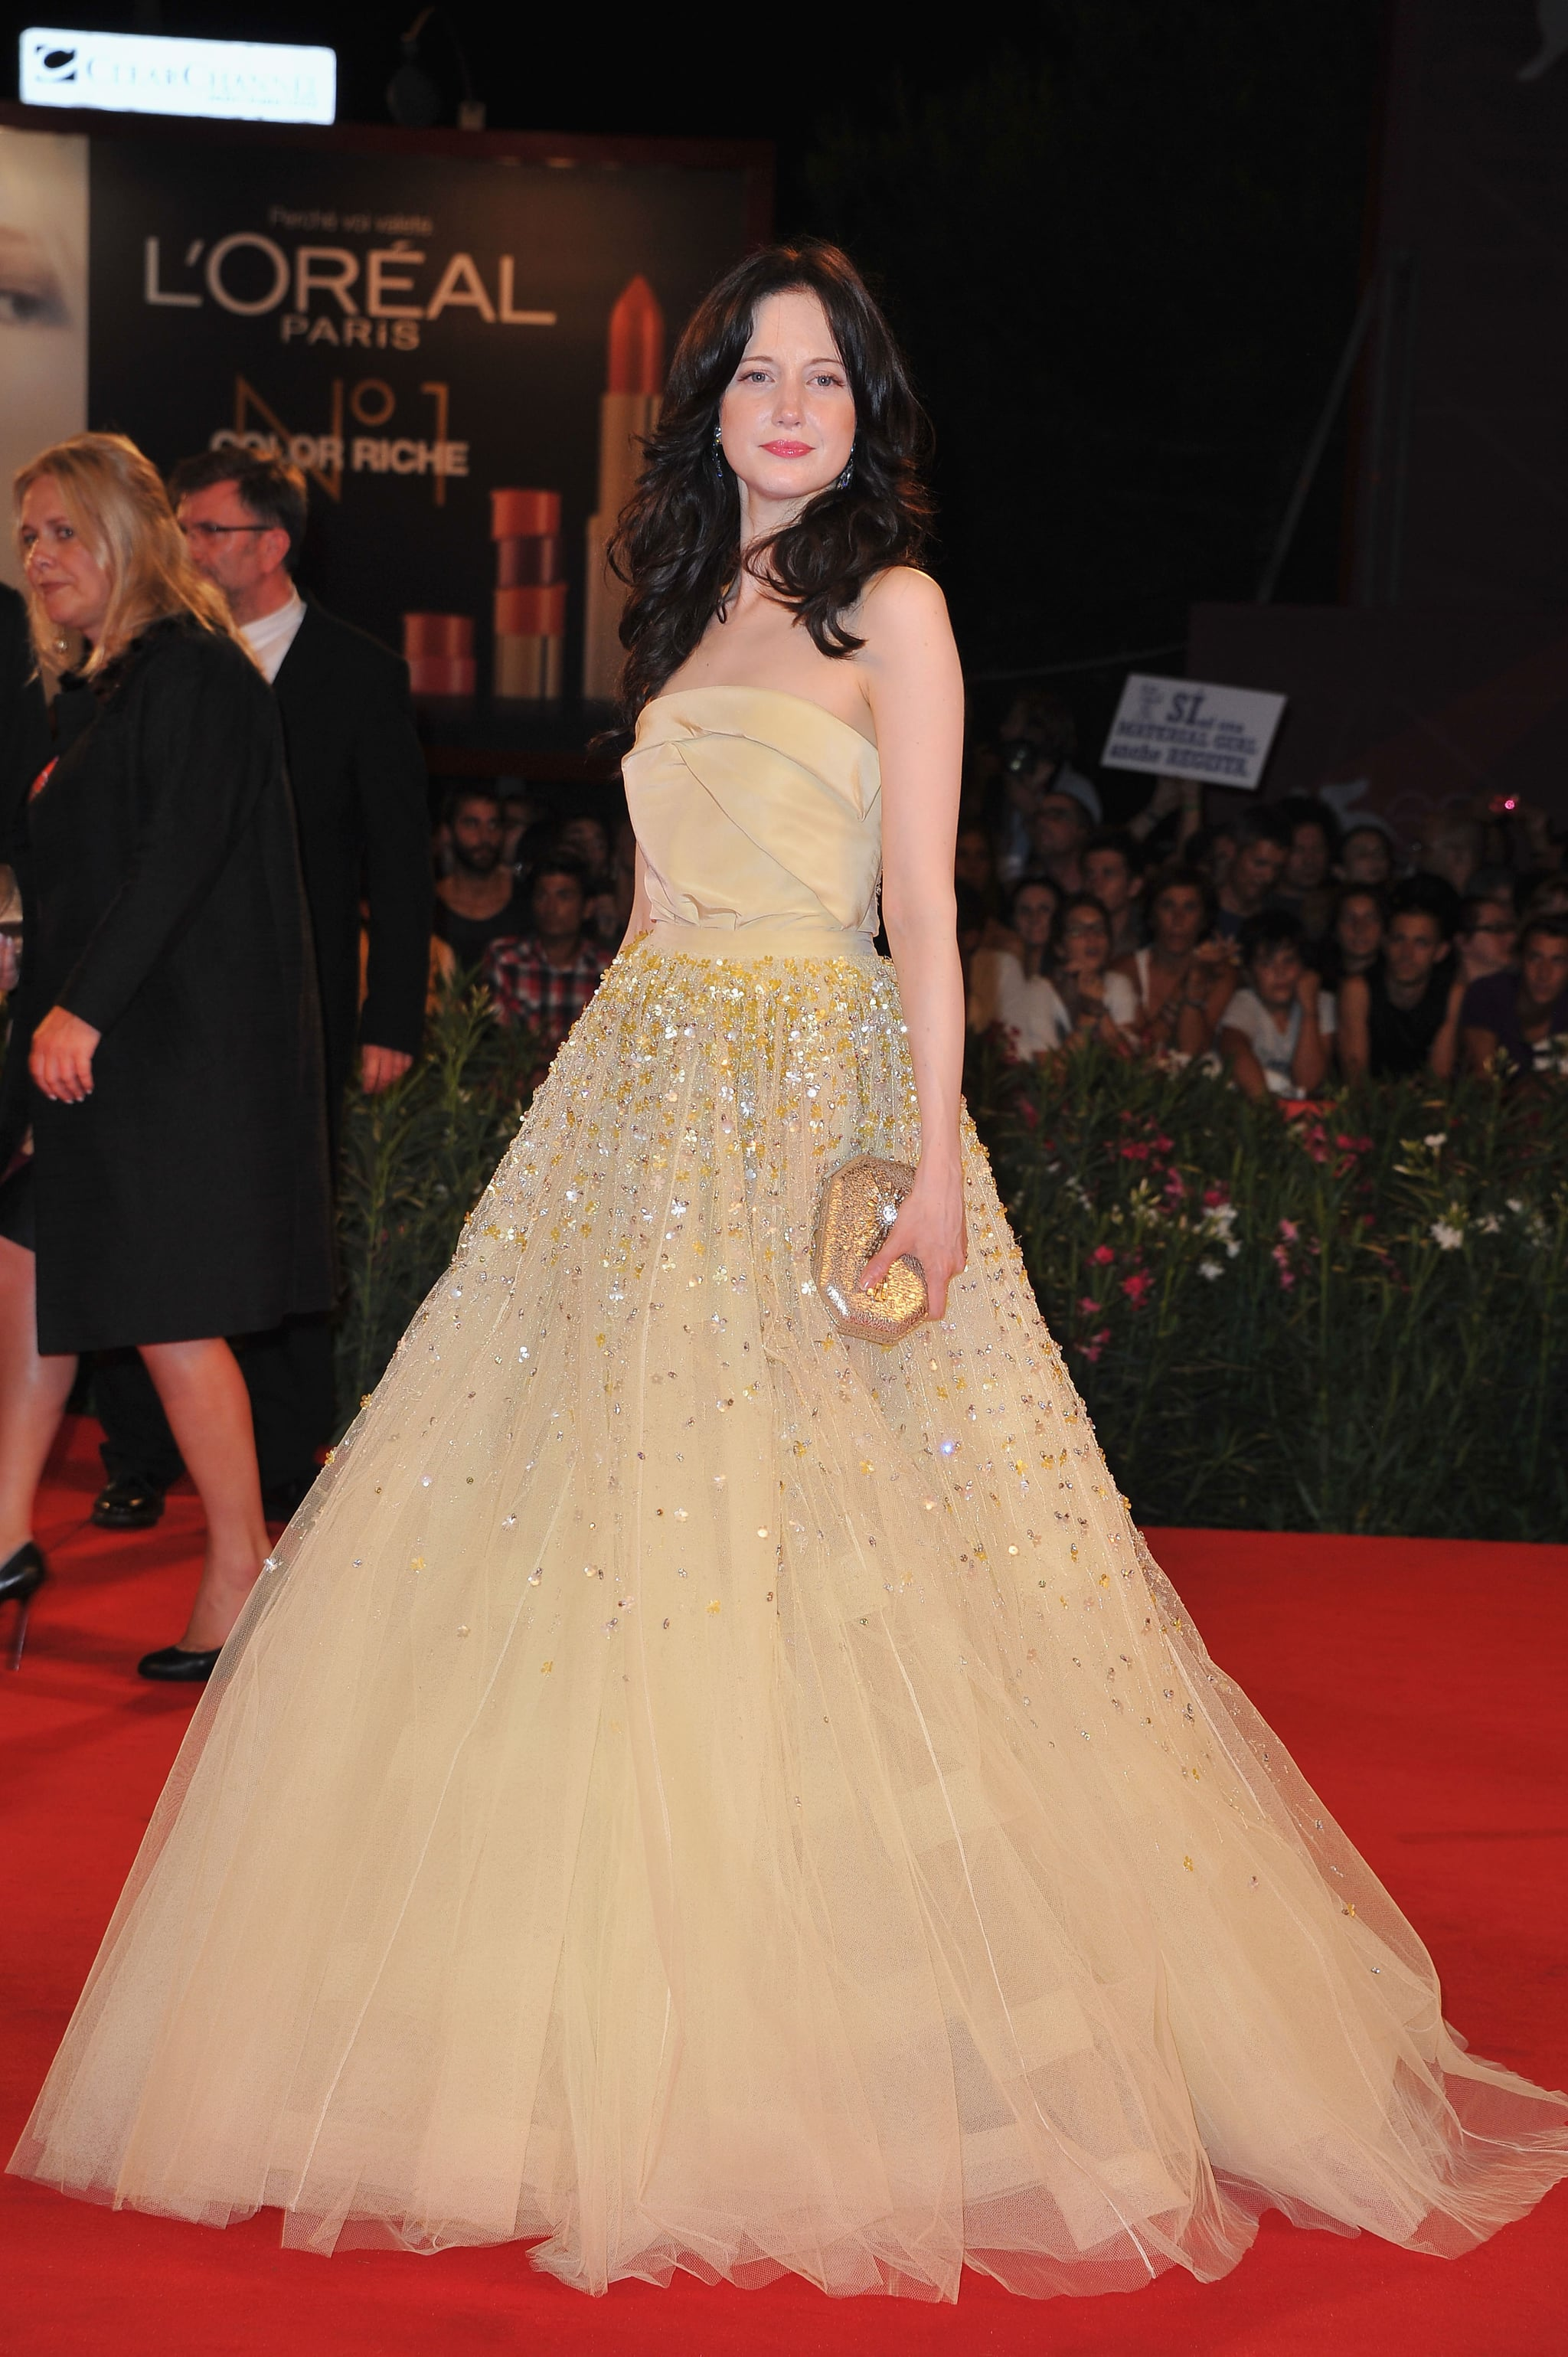 Andrea Riseborough glowed in Christian Dior couture.